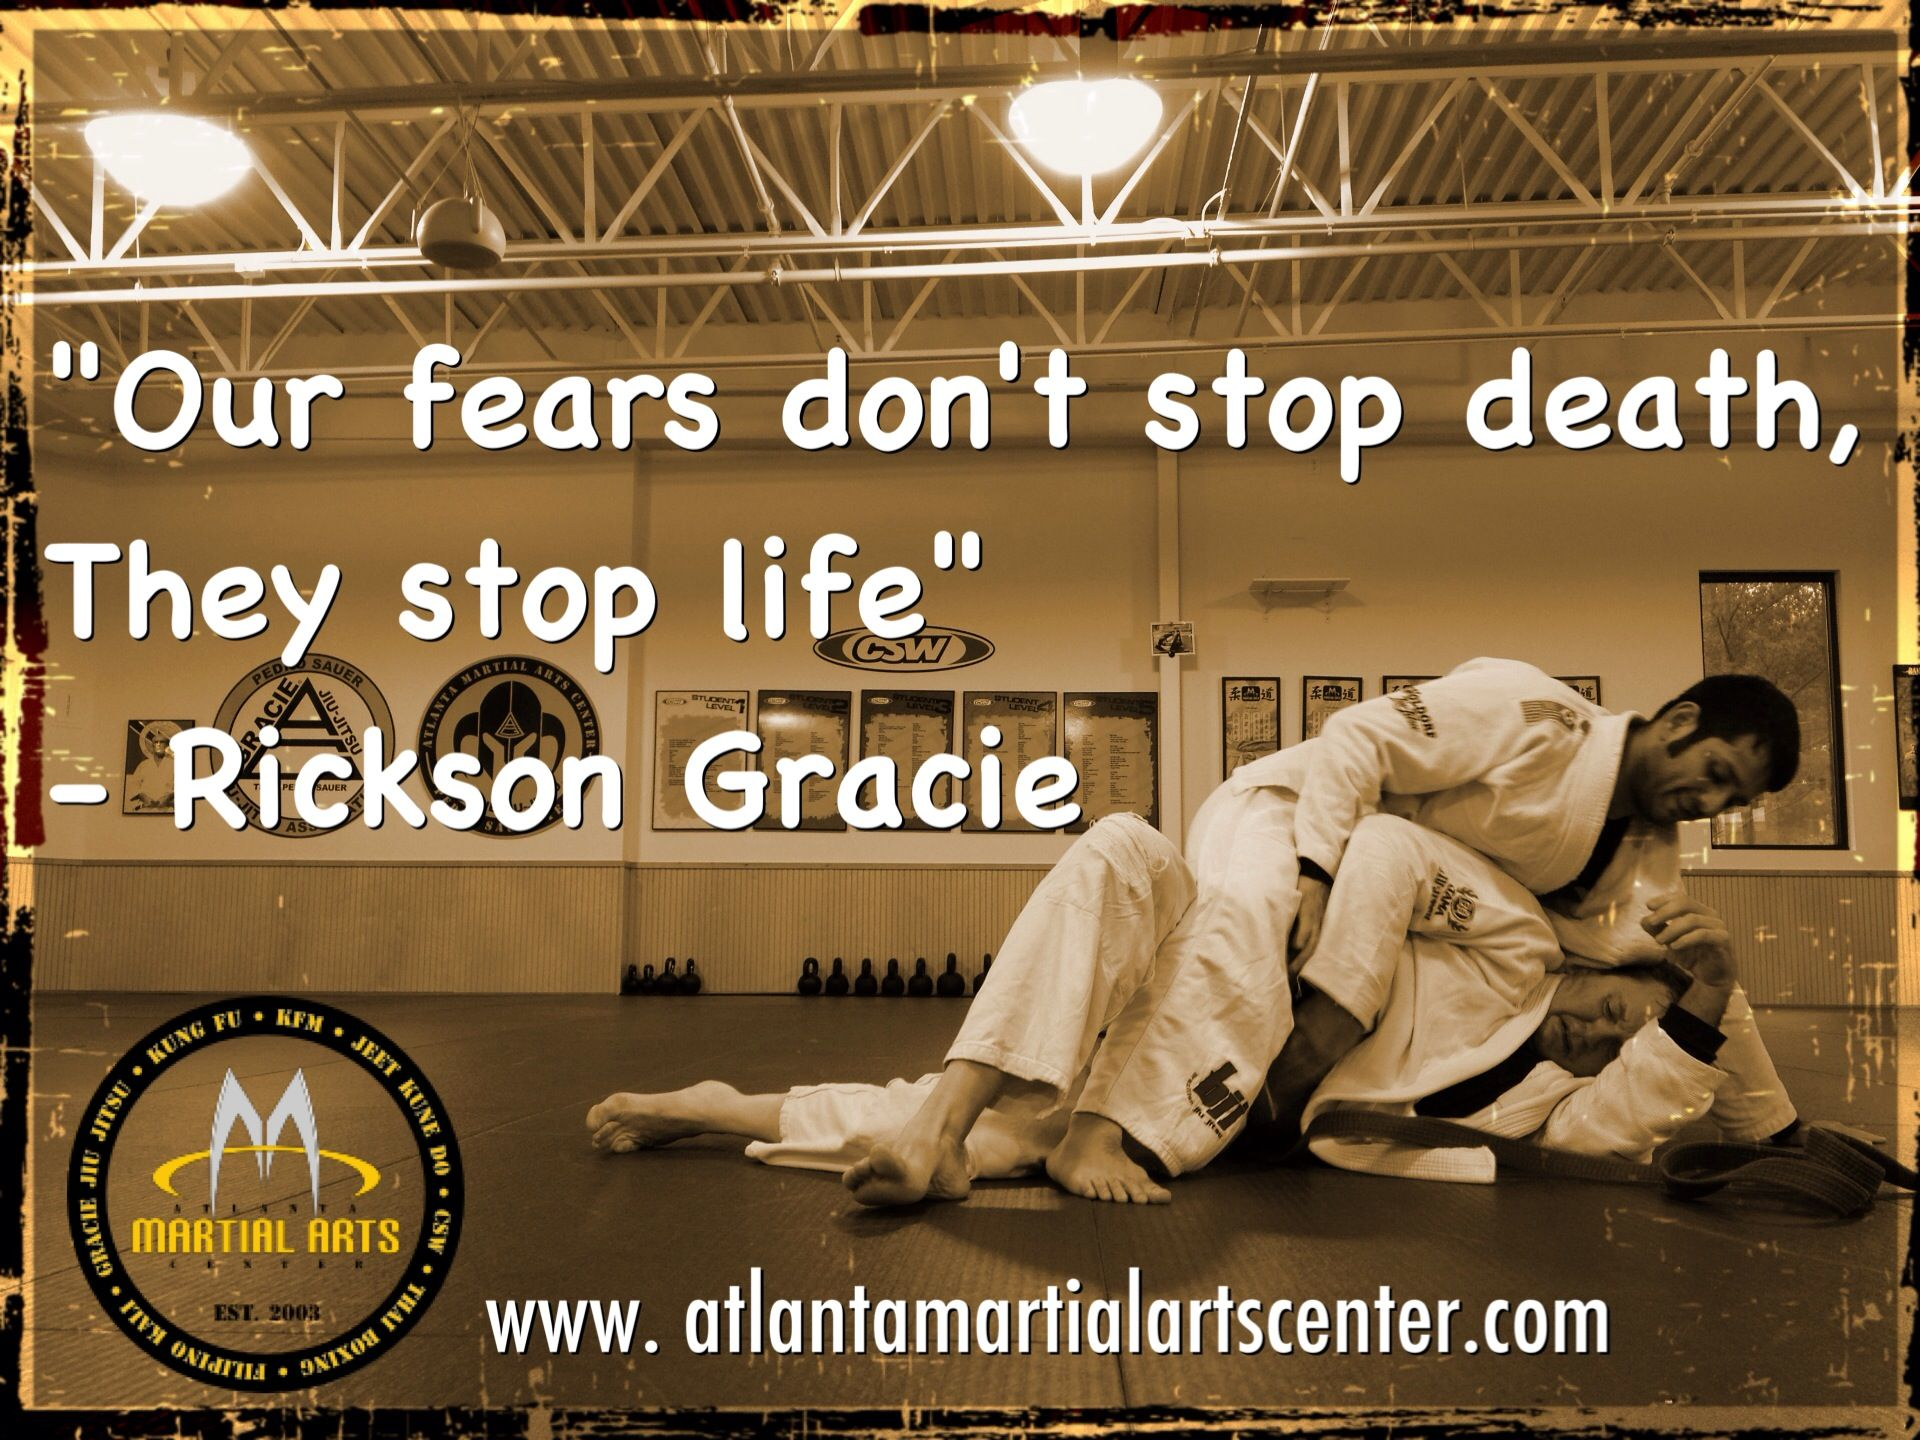 Rickson Gracie | Quotes To Live By | Pinterest | Facebook ...